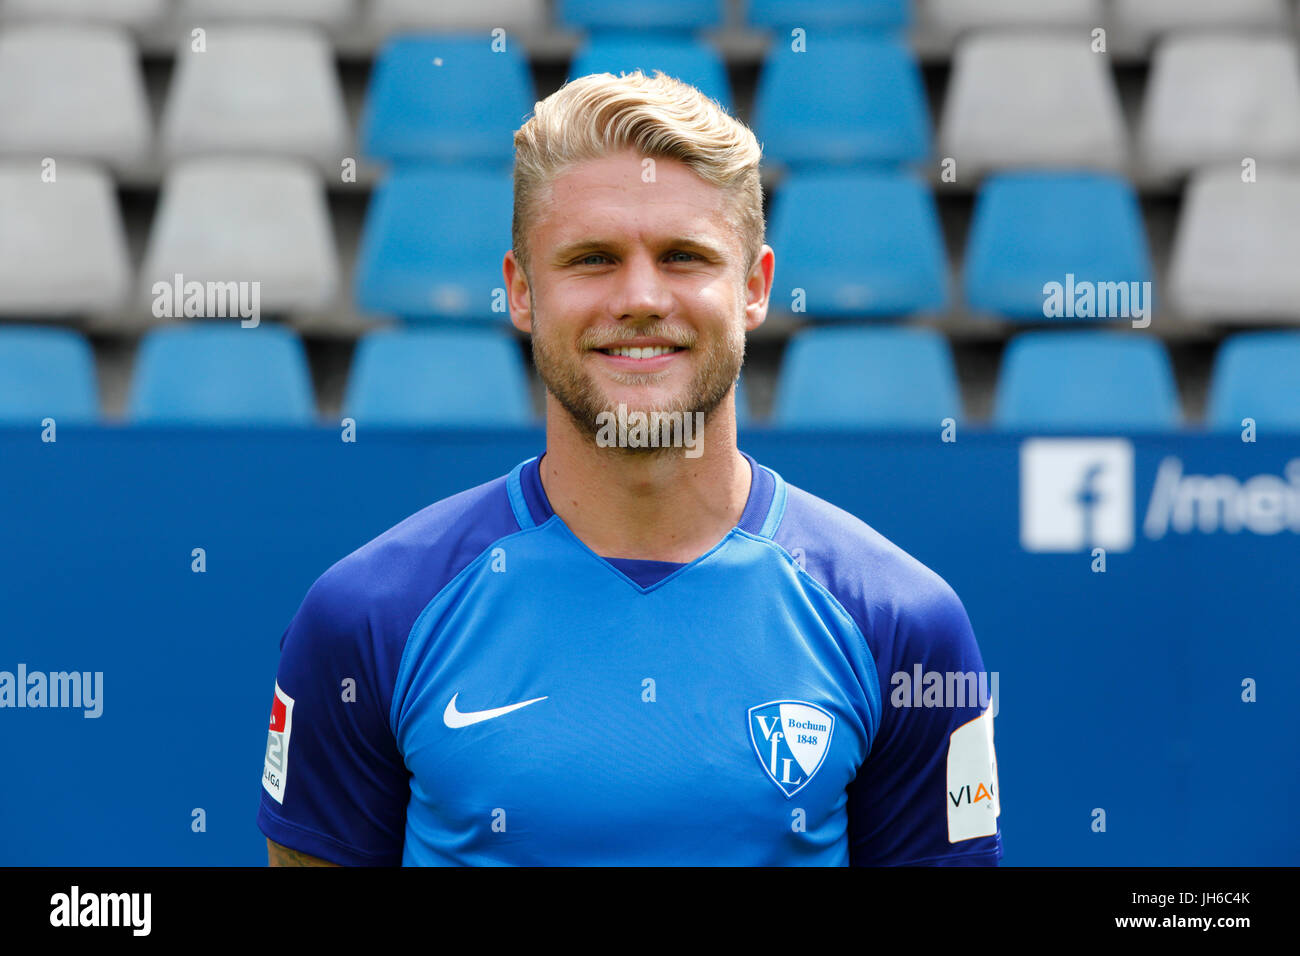 football, 2. Bundesliga, 2017/2018, VfL Bochum, team presentation for the game season, Alexander Merkel - Stock Image